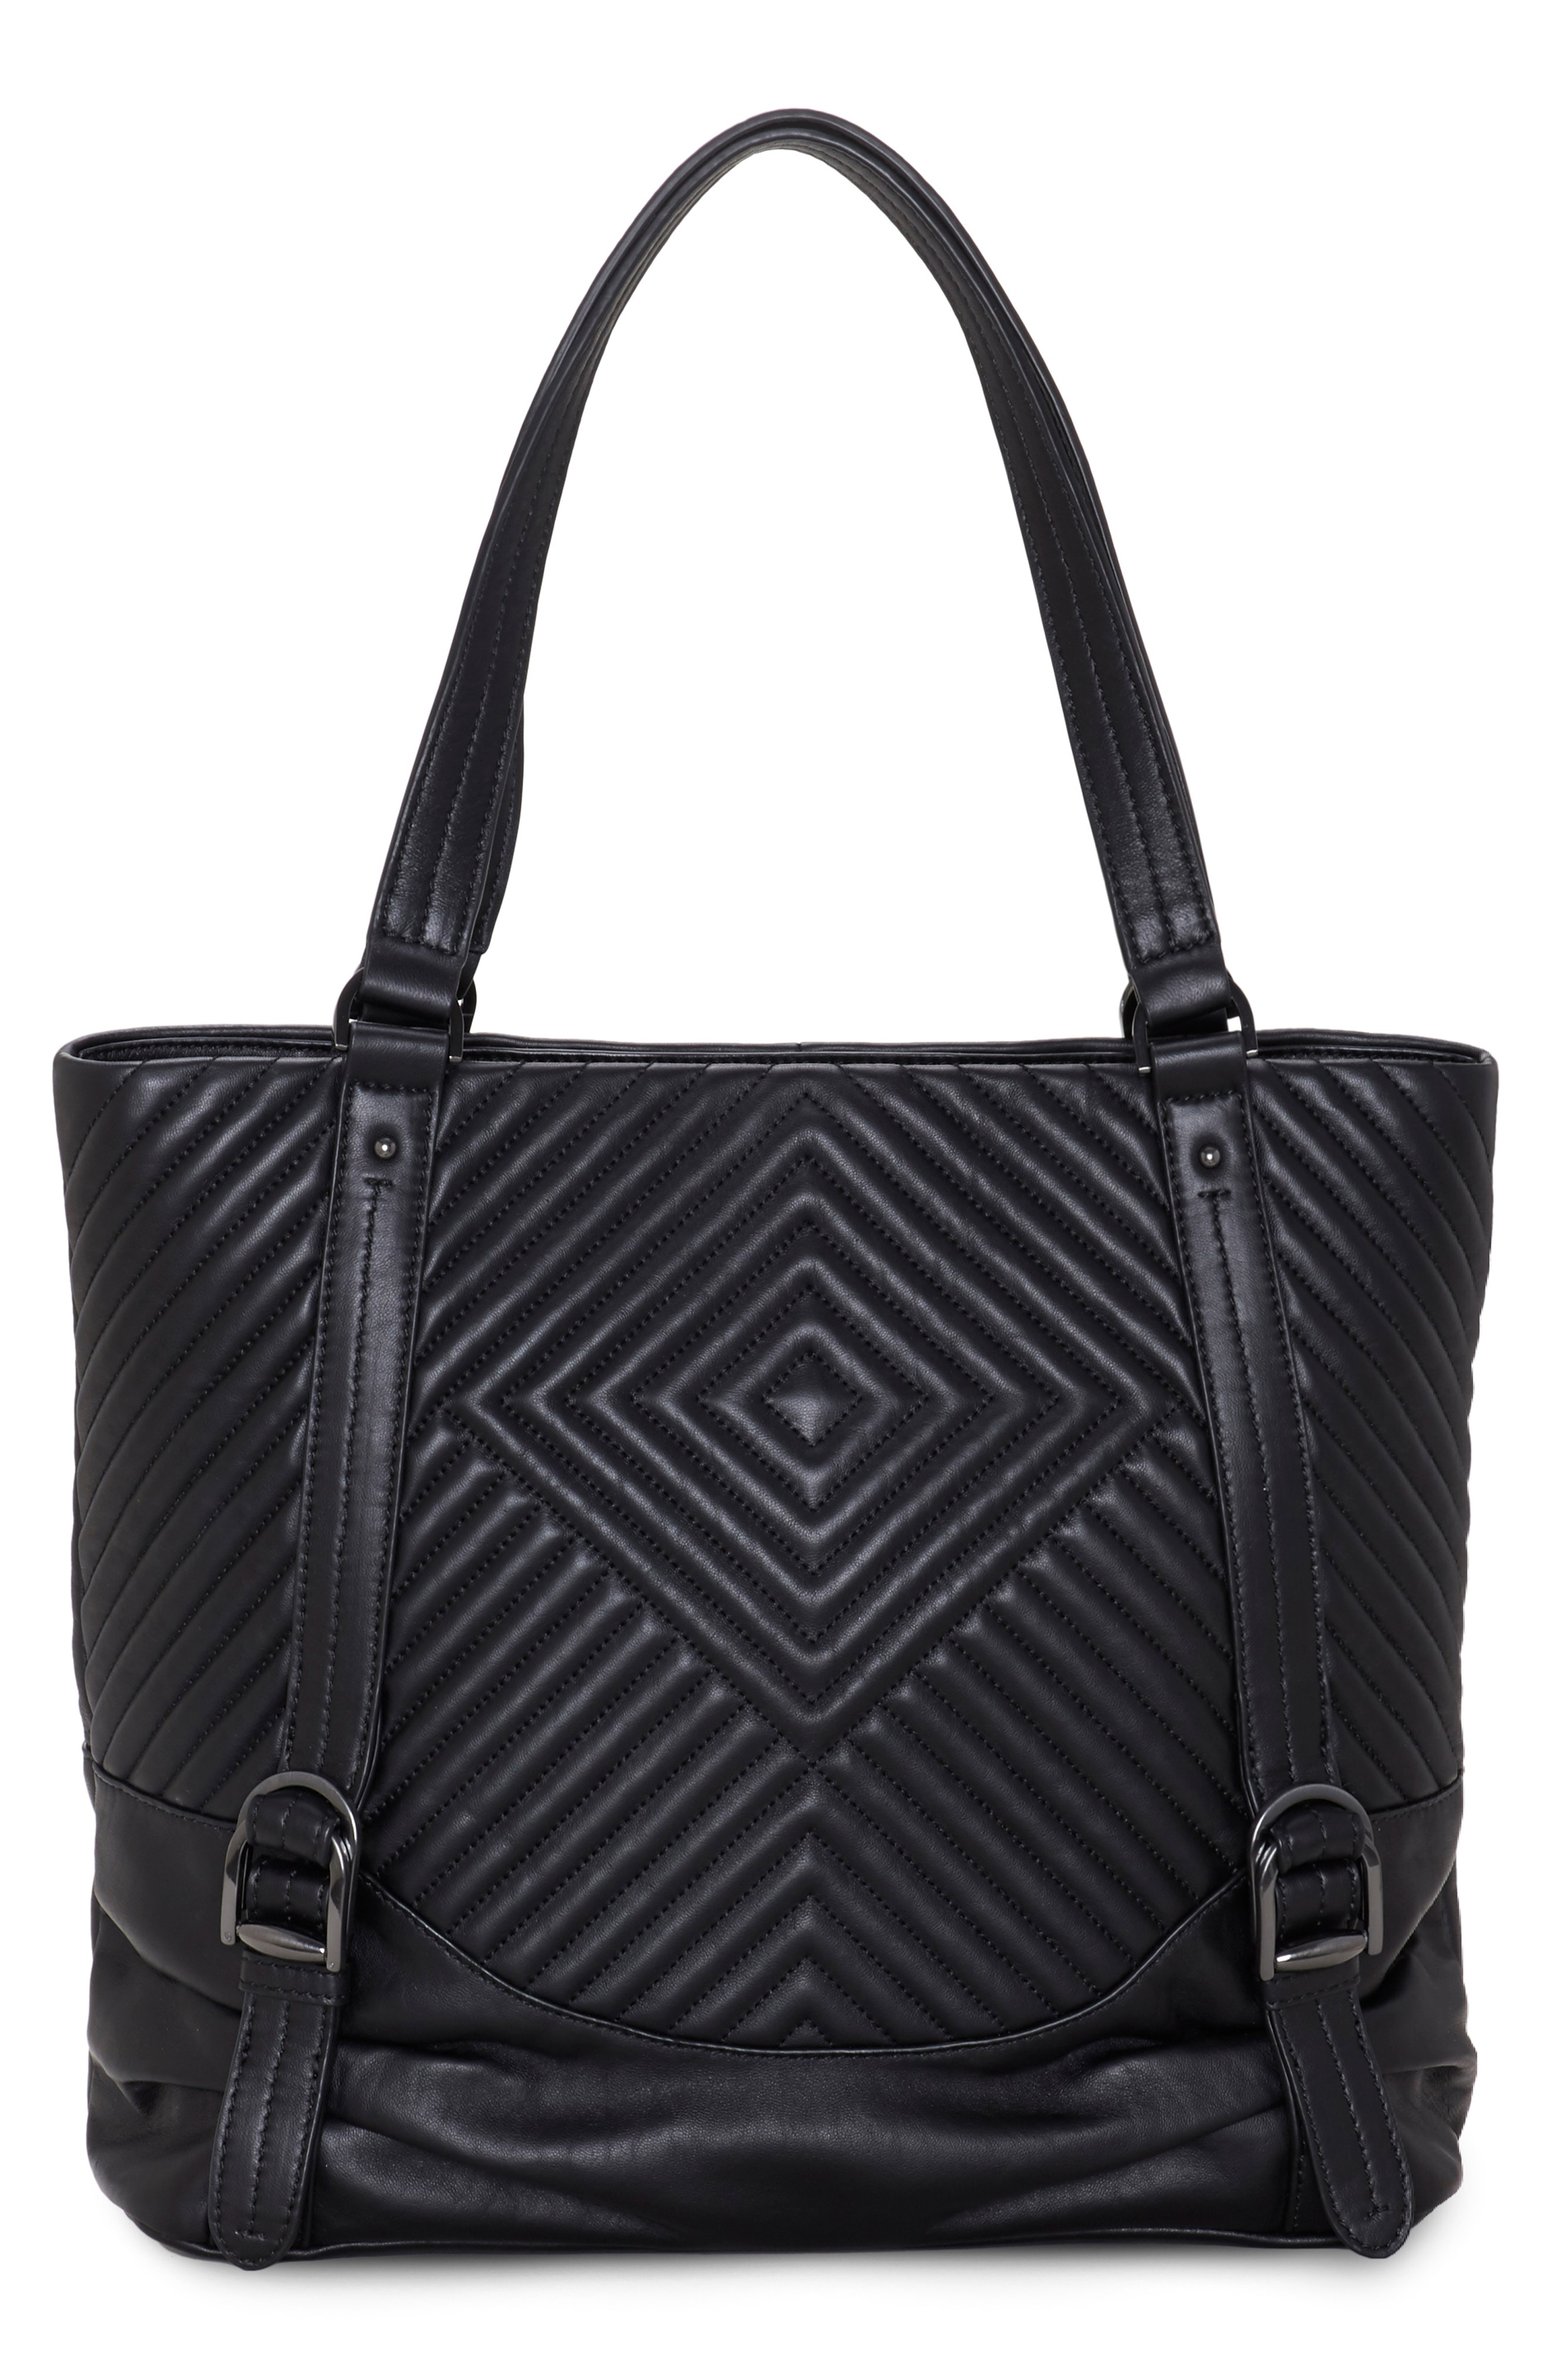 Vince Camuto Tave Quilted Leather Tote